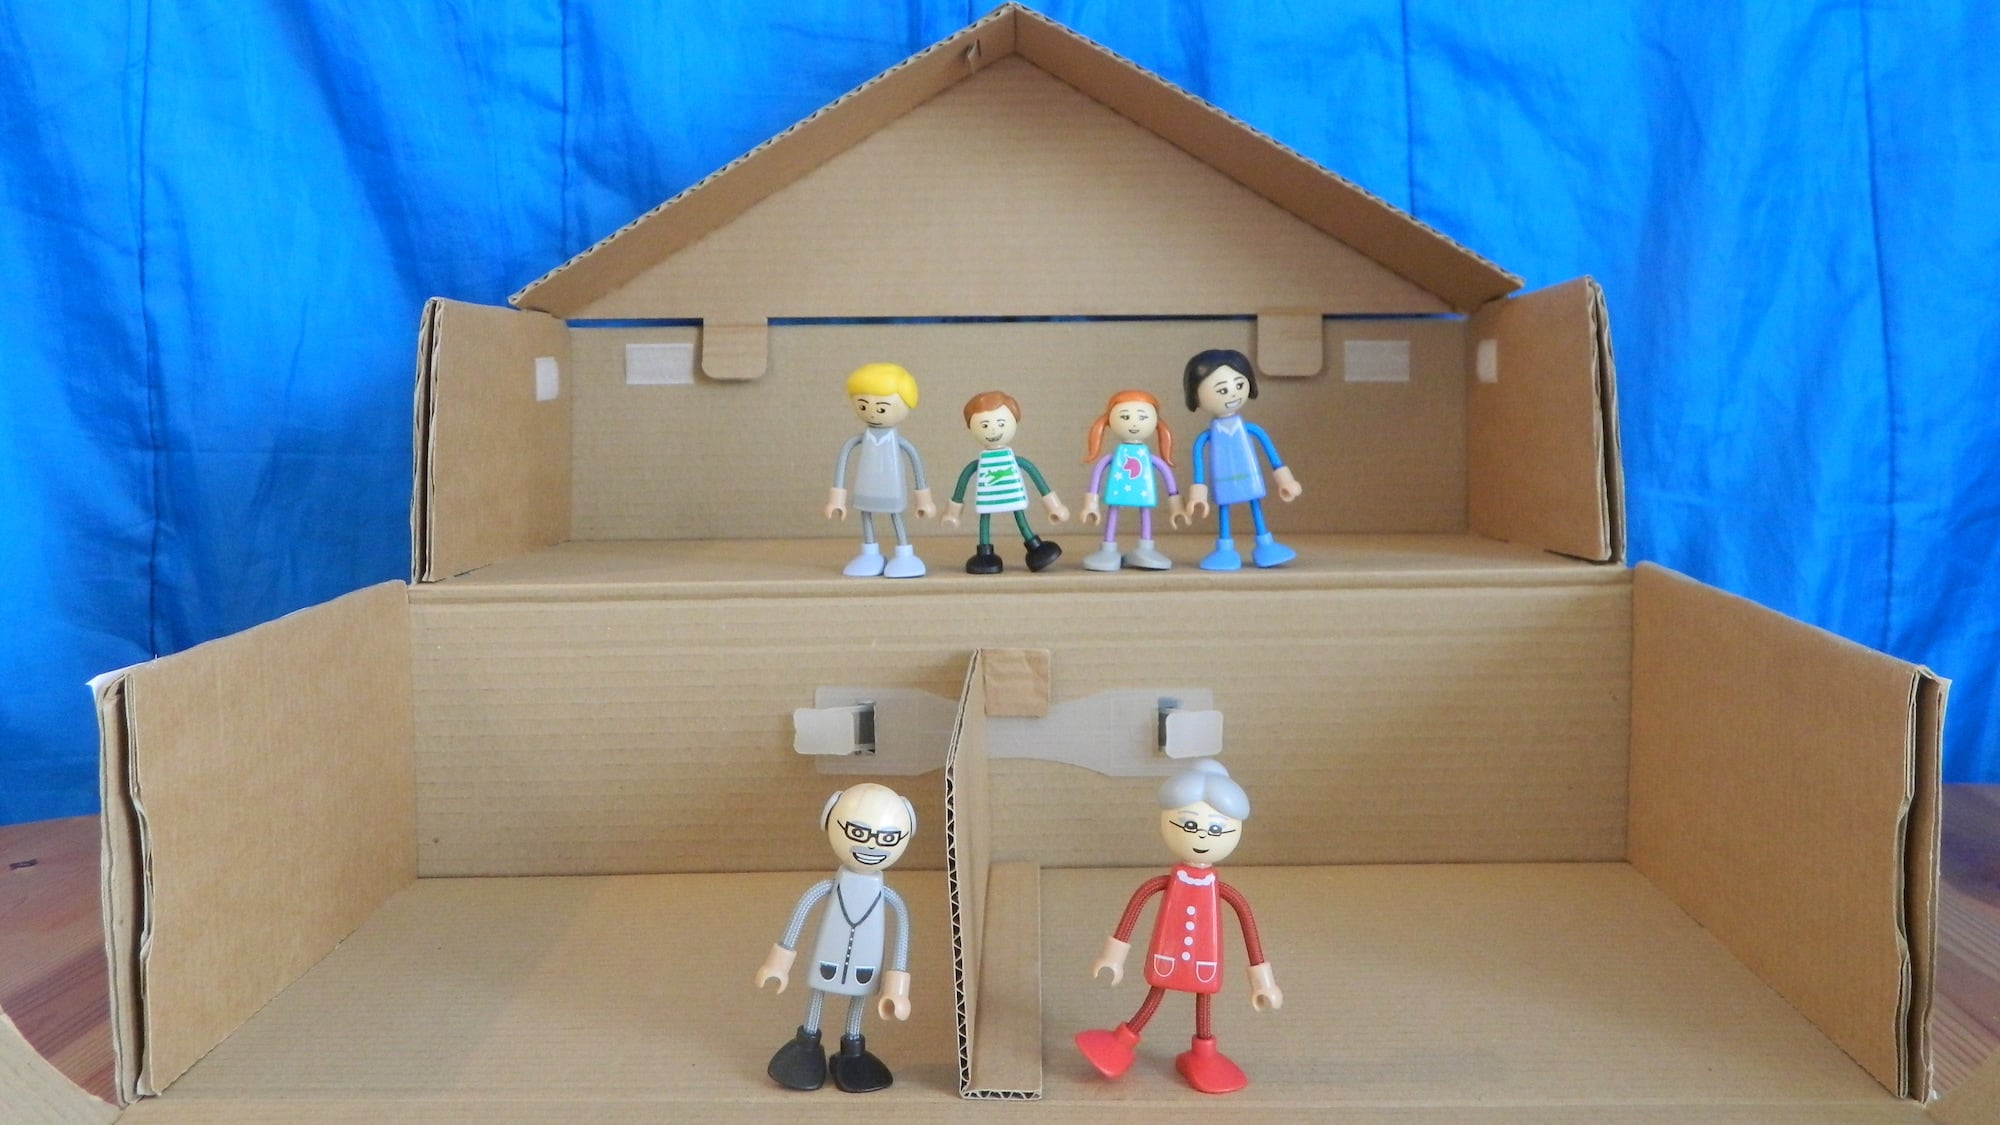 Yourbox2 Transformable Cardboard Box Toy